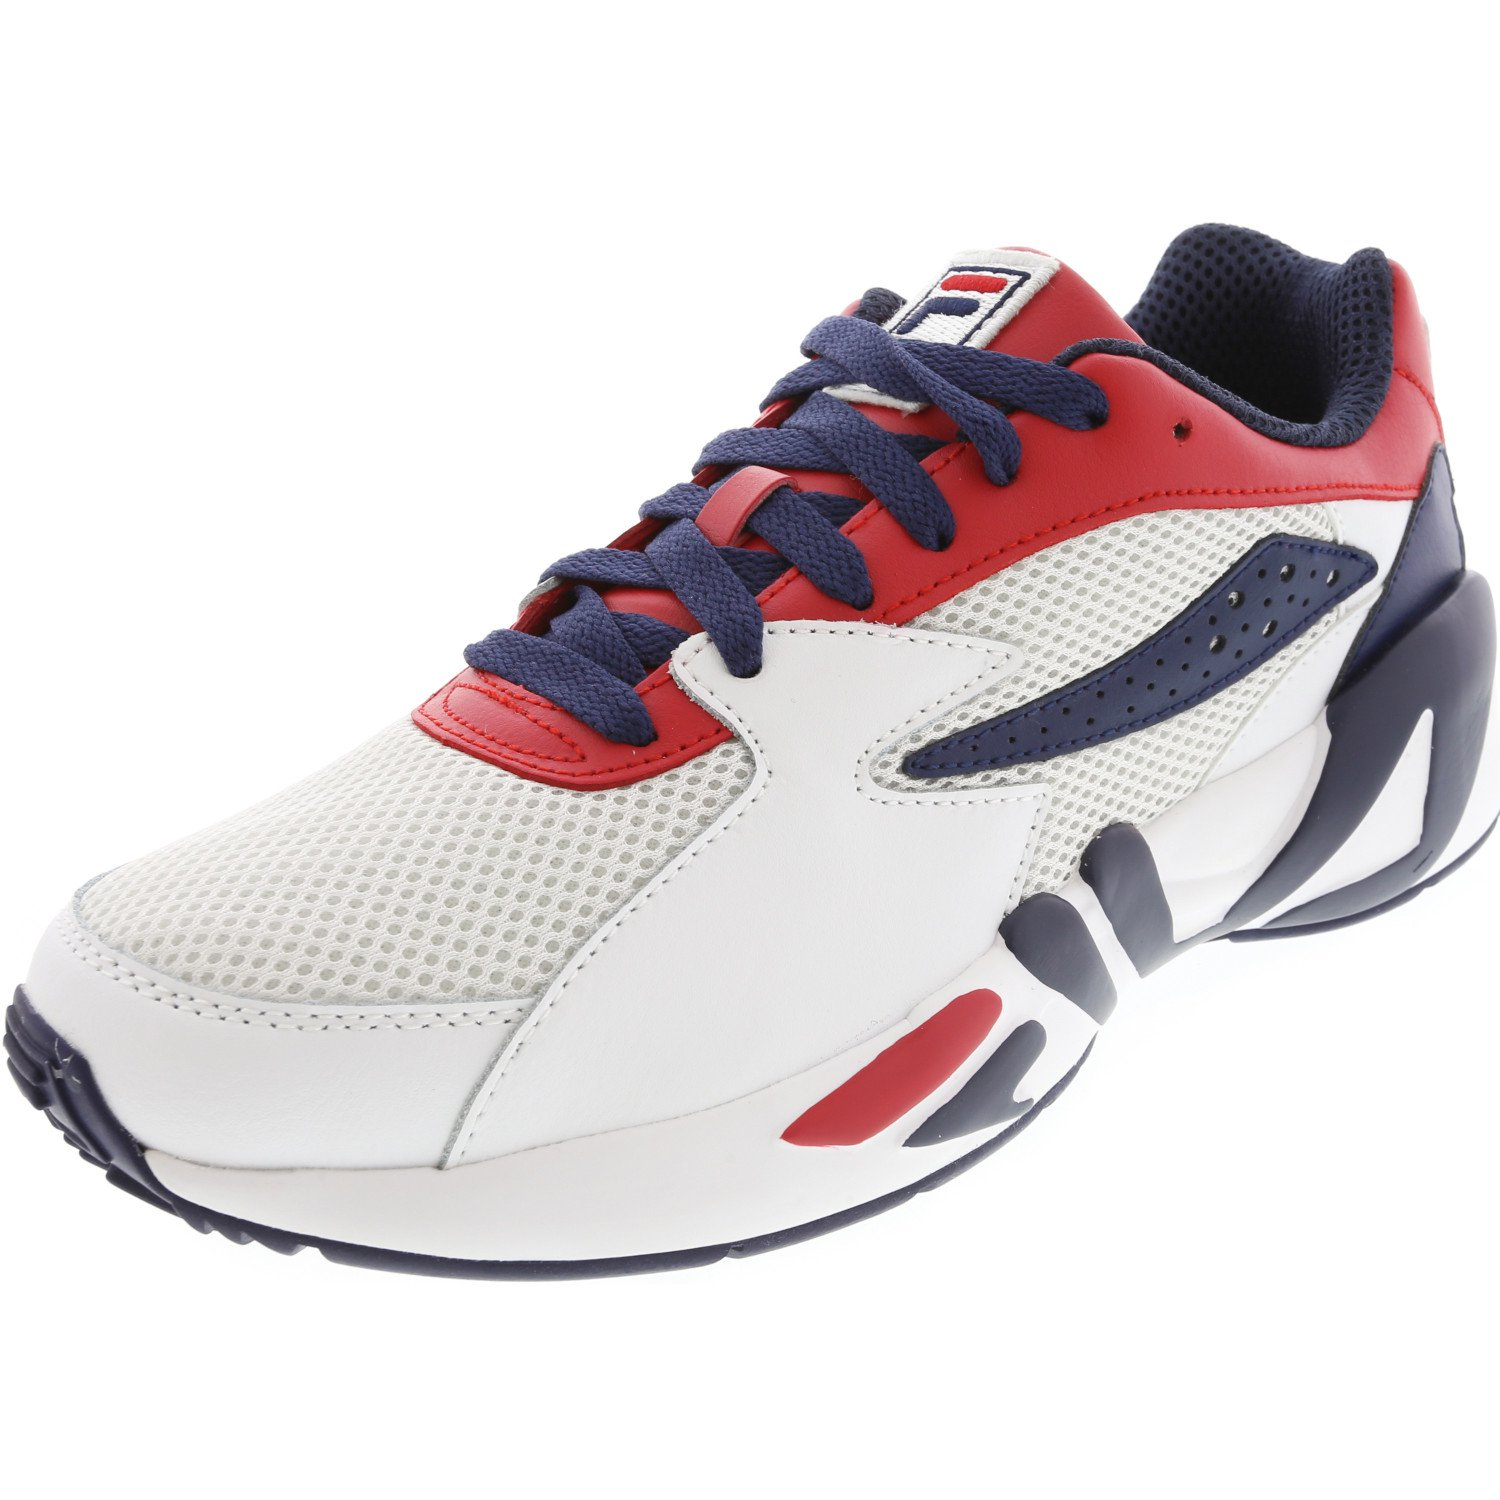 Fila Fila Mindblower Athletic Style Fashion Sneaker 10M